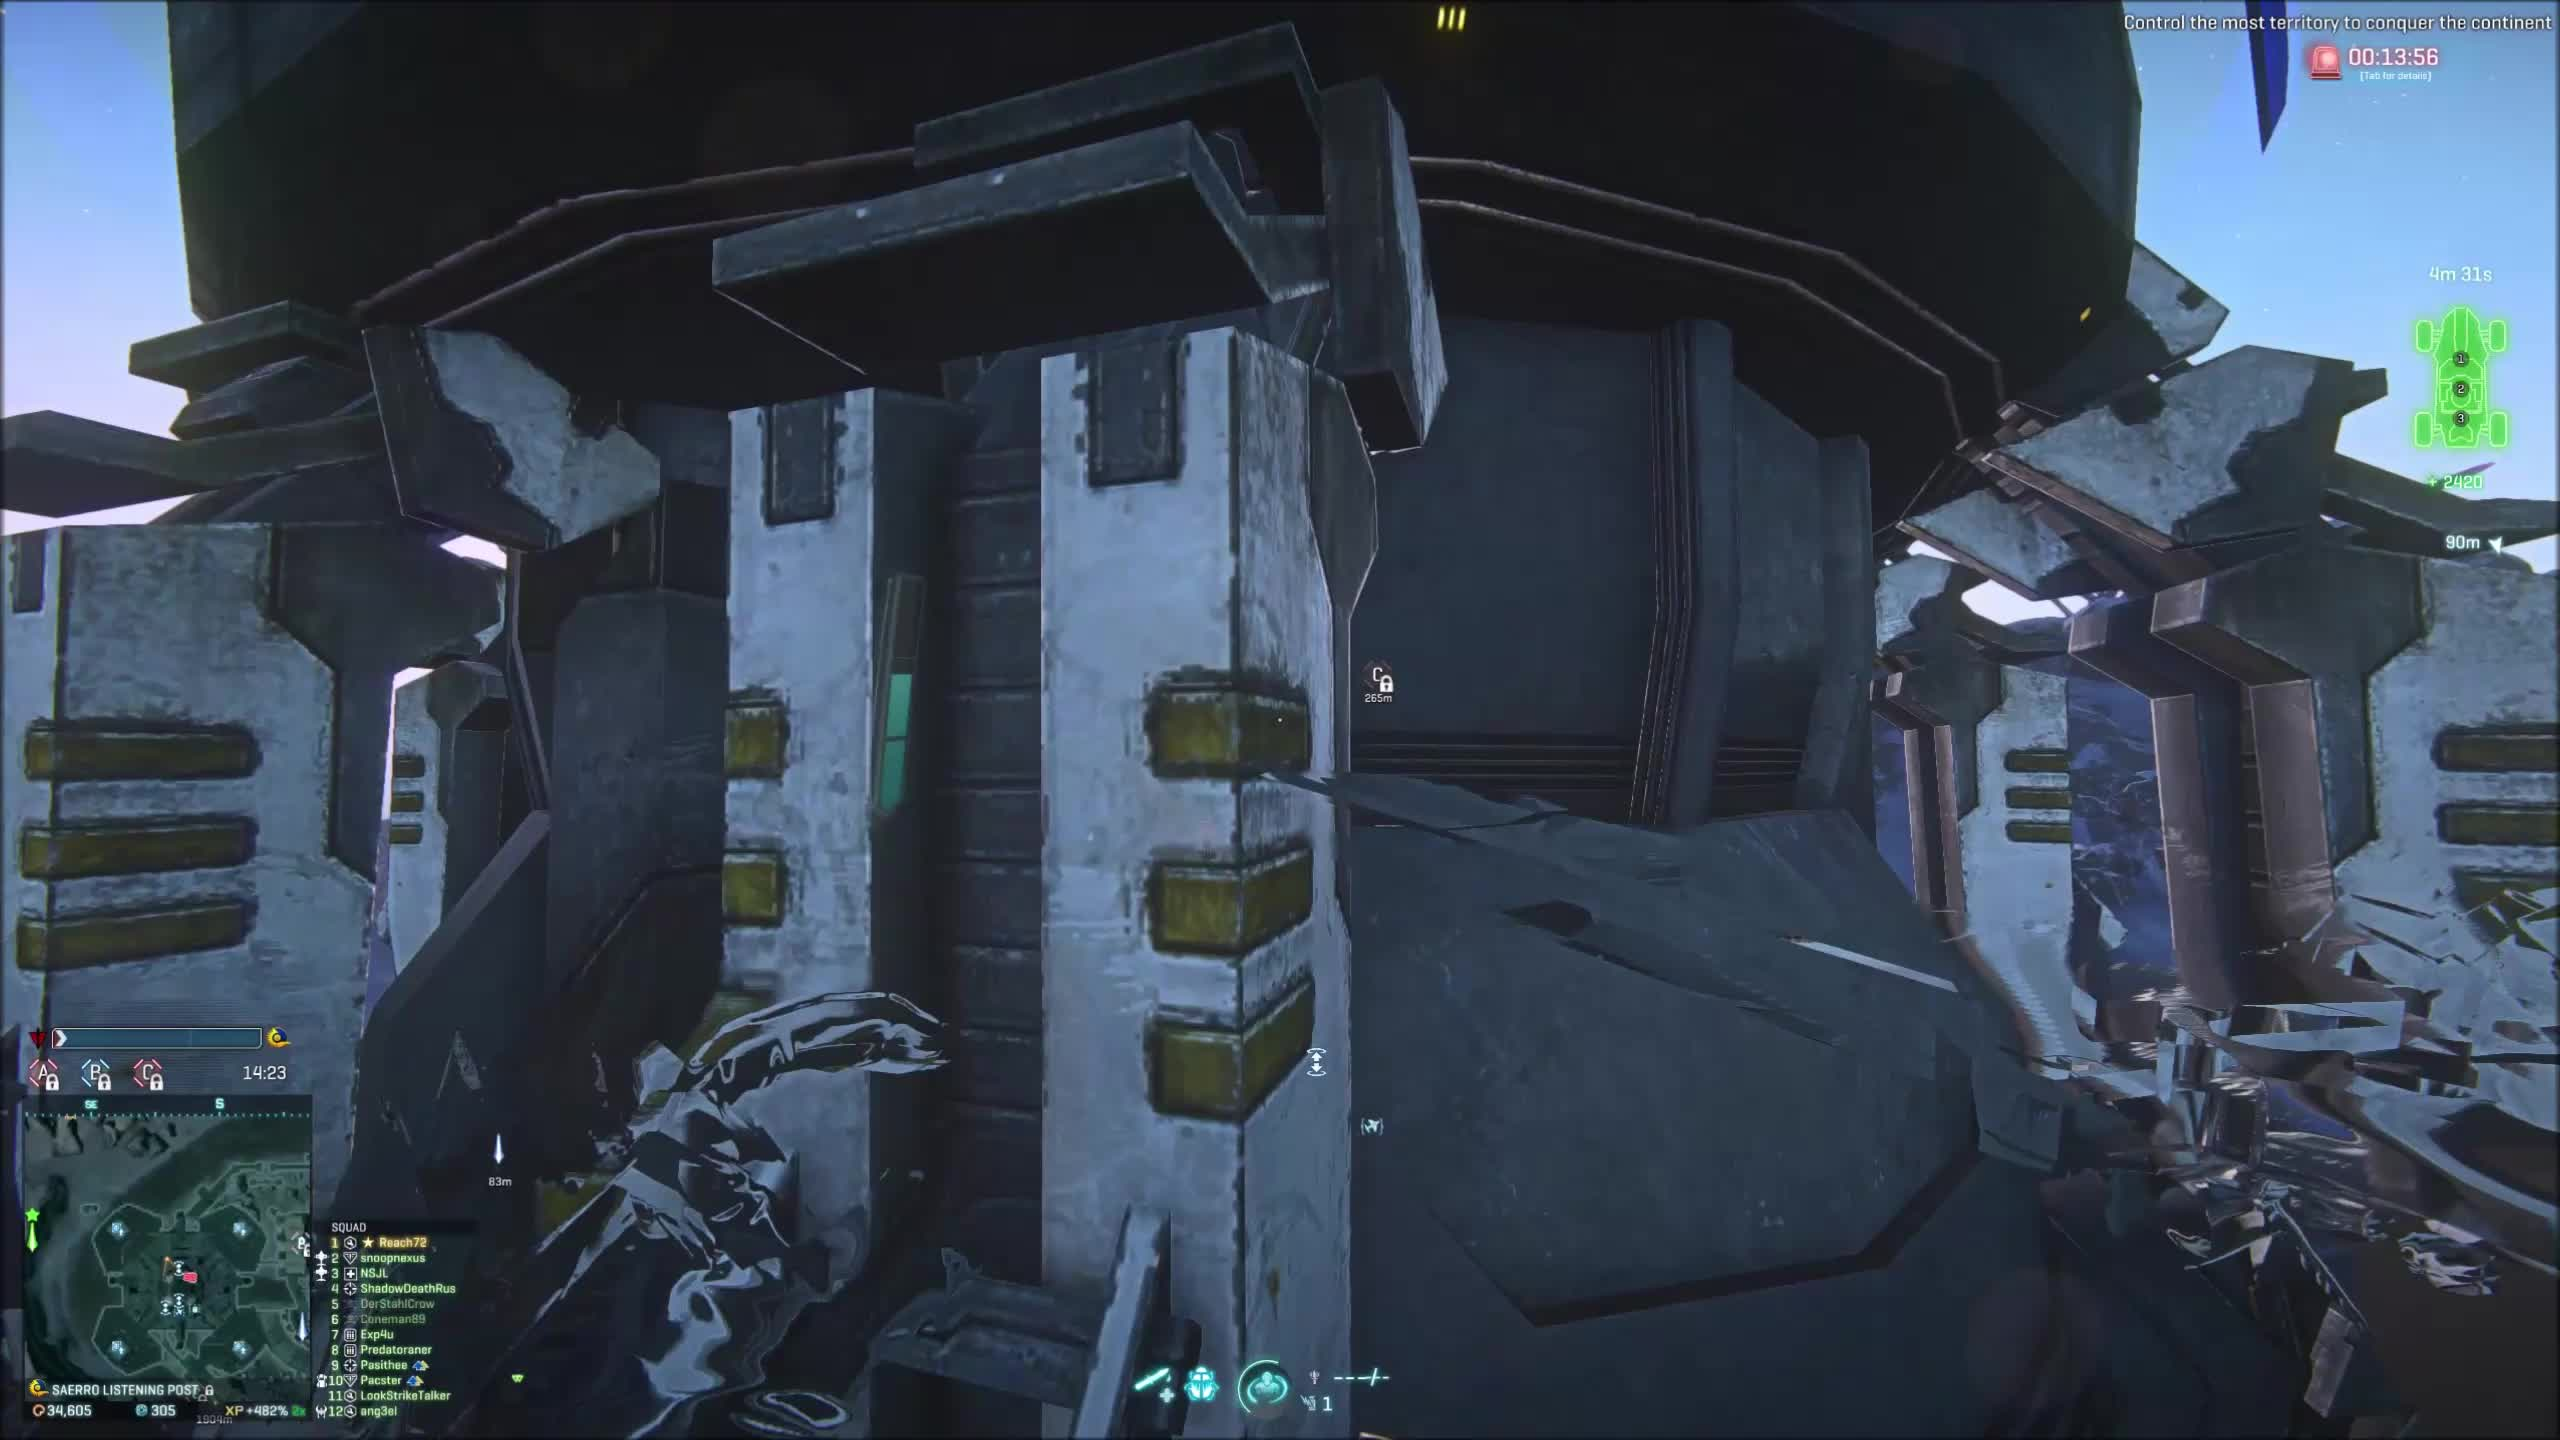 planetside, planetside 2, planetside2, ps2, Hi. Do you want to be my friend? GIFs